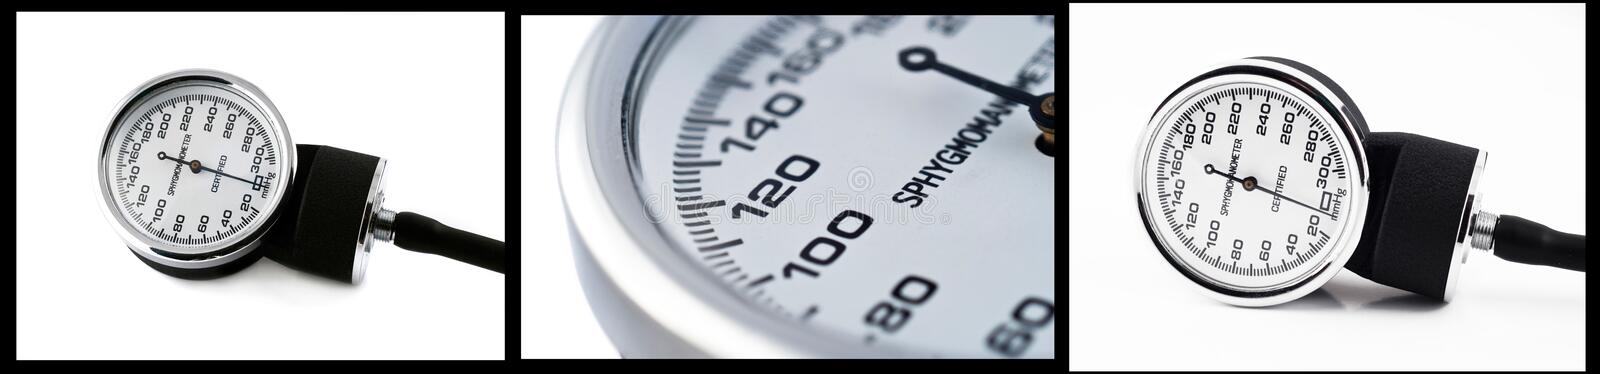 Download Collage Of Sphygmomanometer Close Up Photos Stock Photo - Image: 10454950